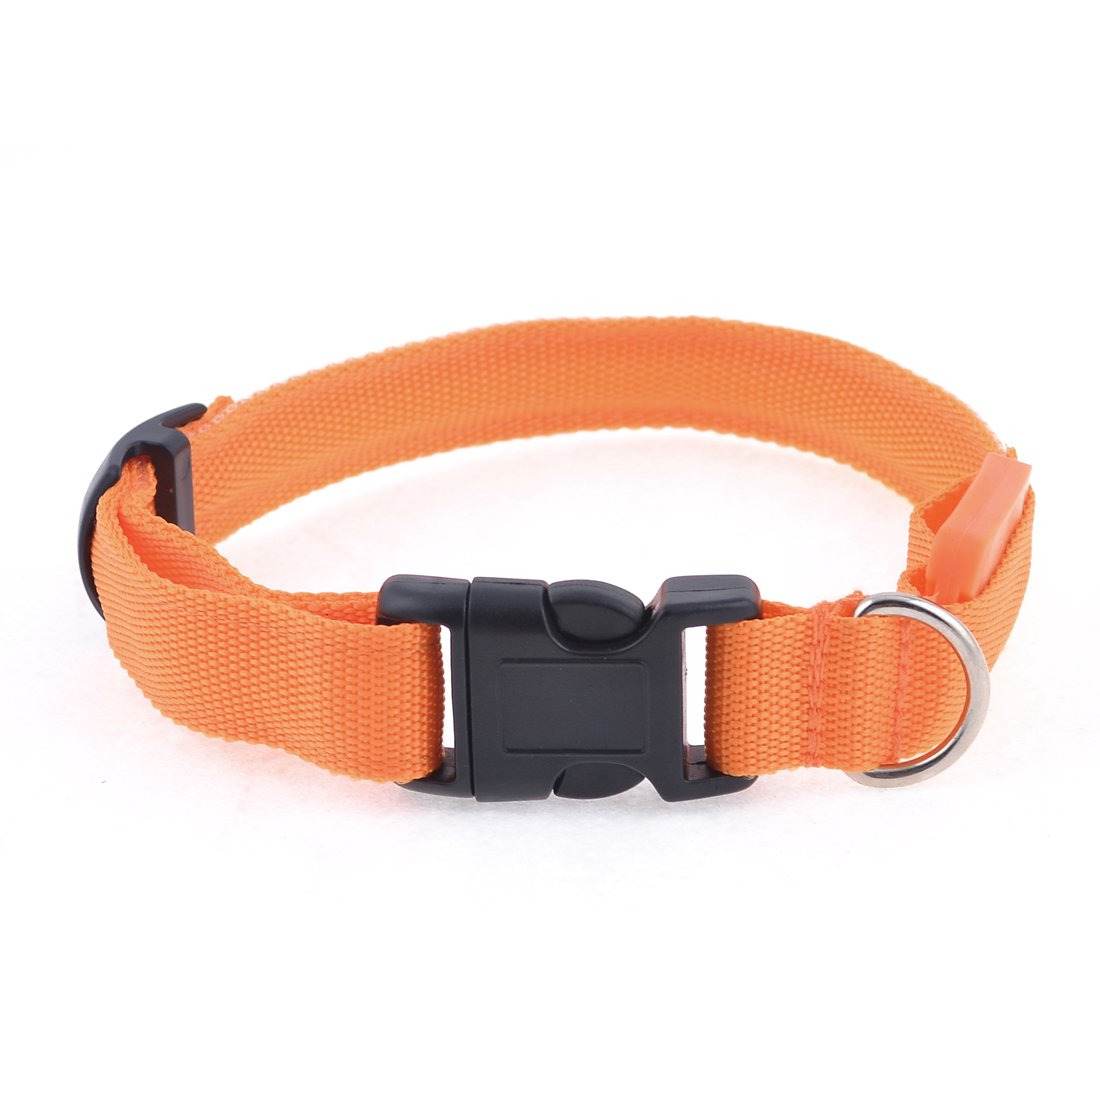 Release Buckle Orange LED Flash Light Leash Rope Strap for Puppy Dog Pet